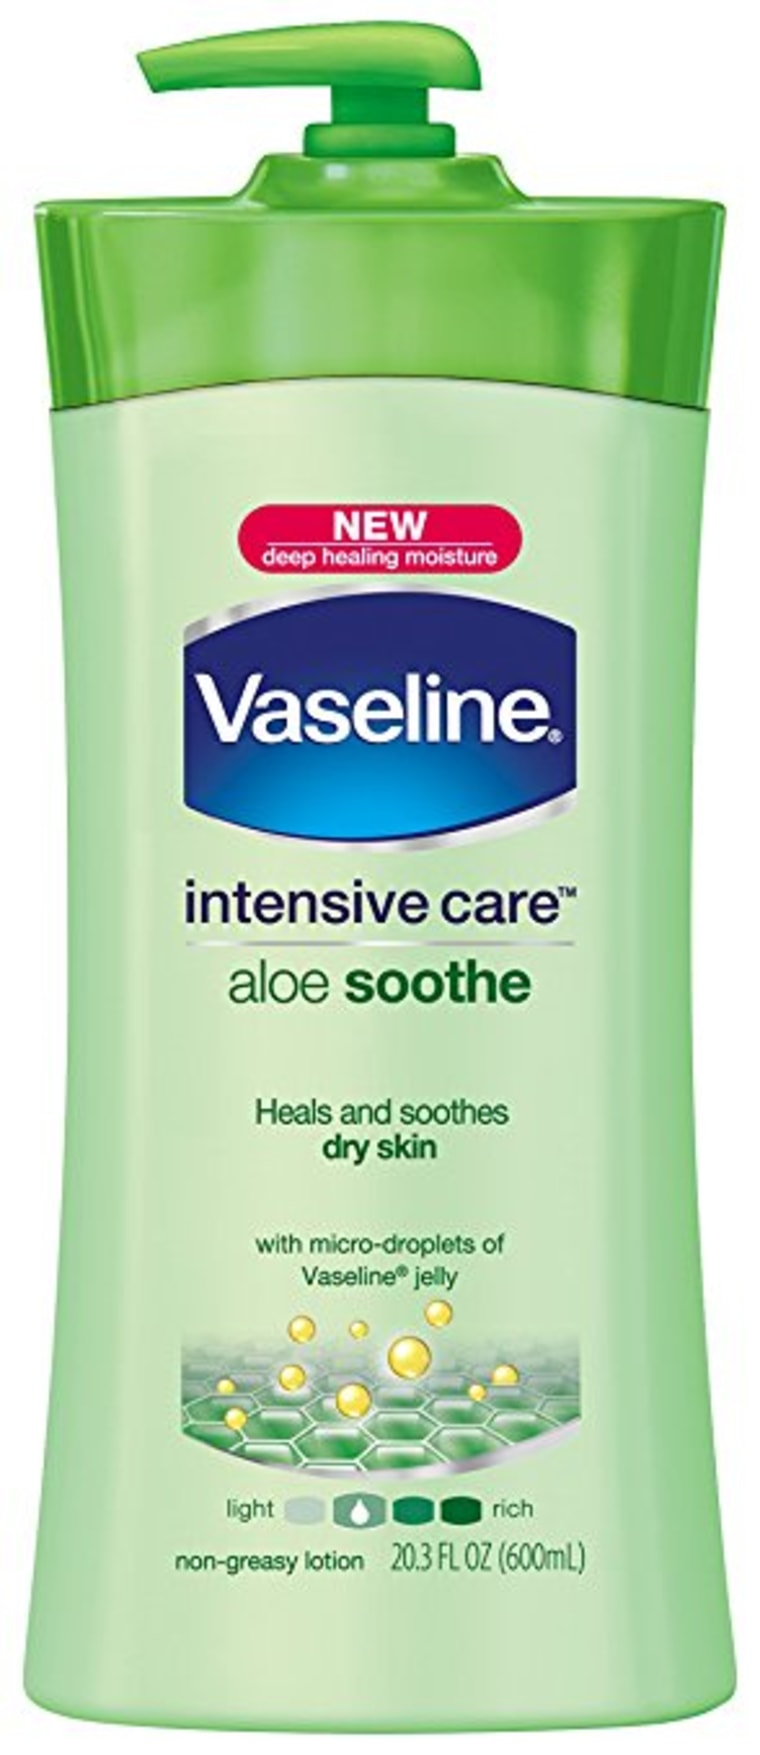 Vaseline Intensive Care Lotion, Aloe Soothe